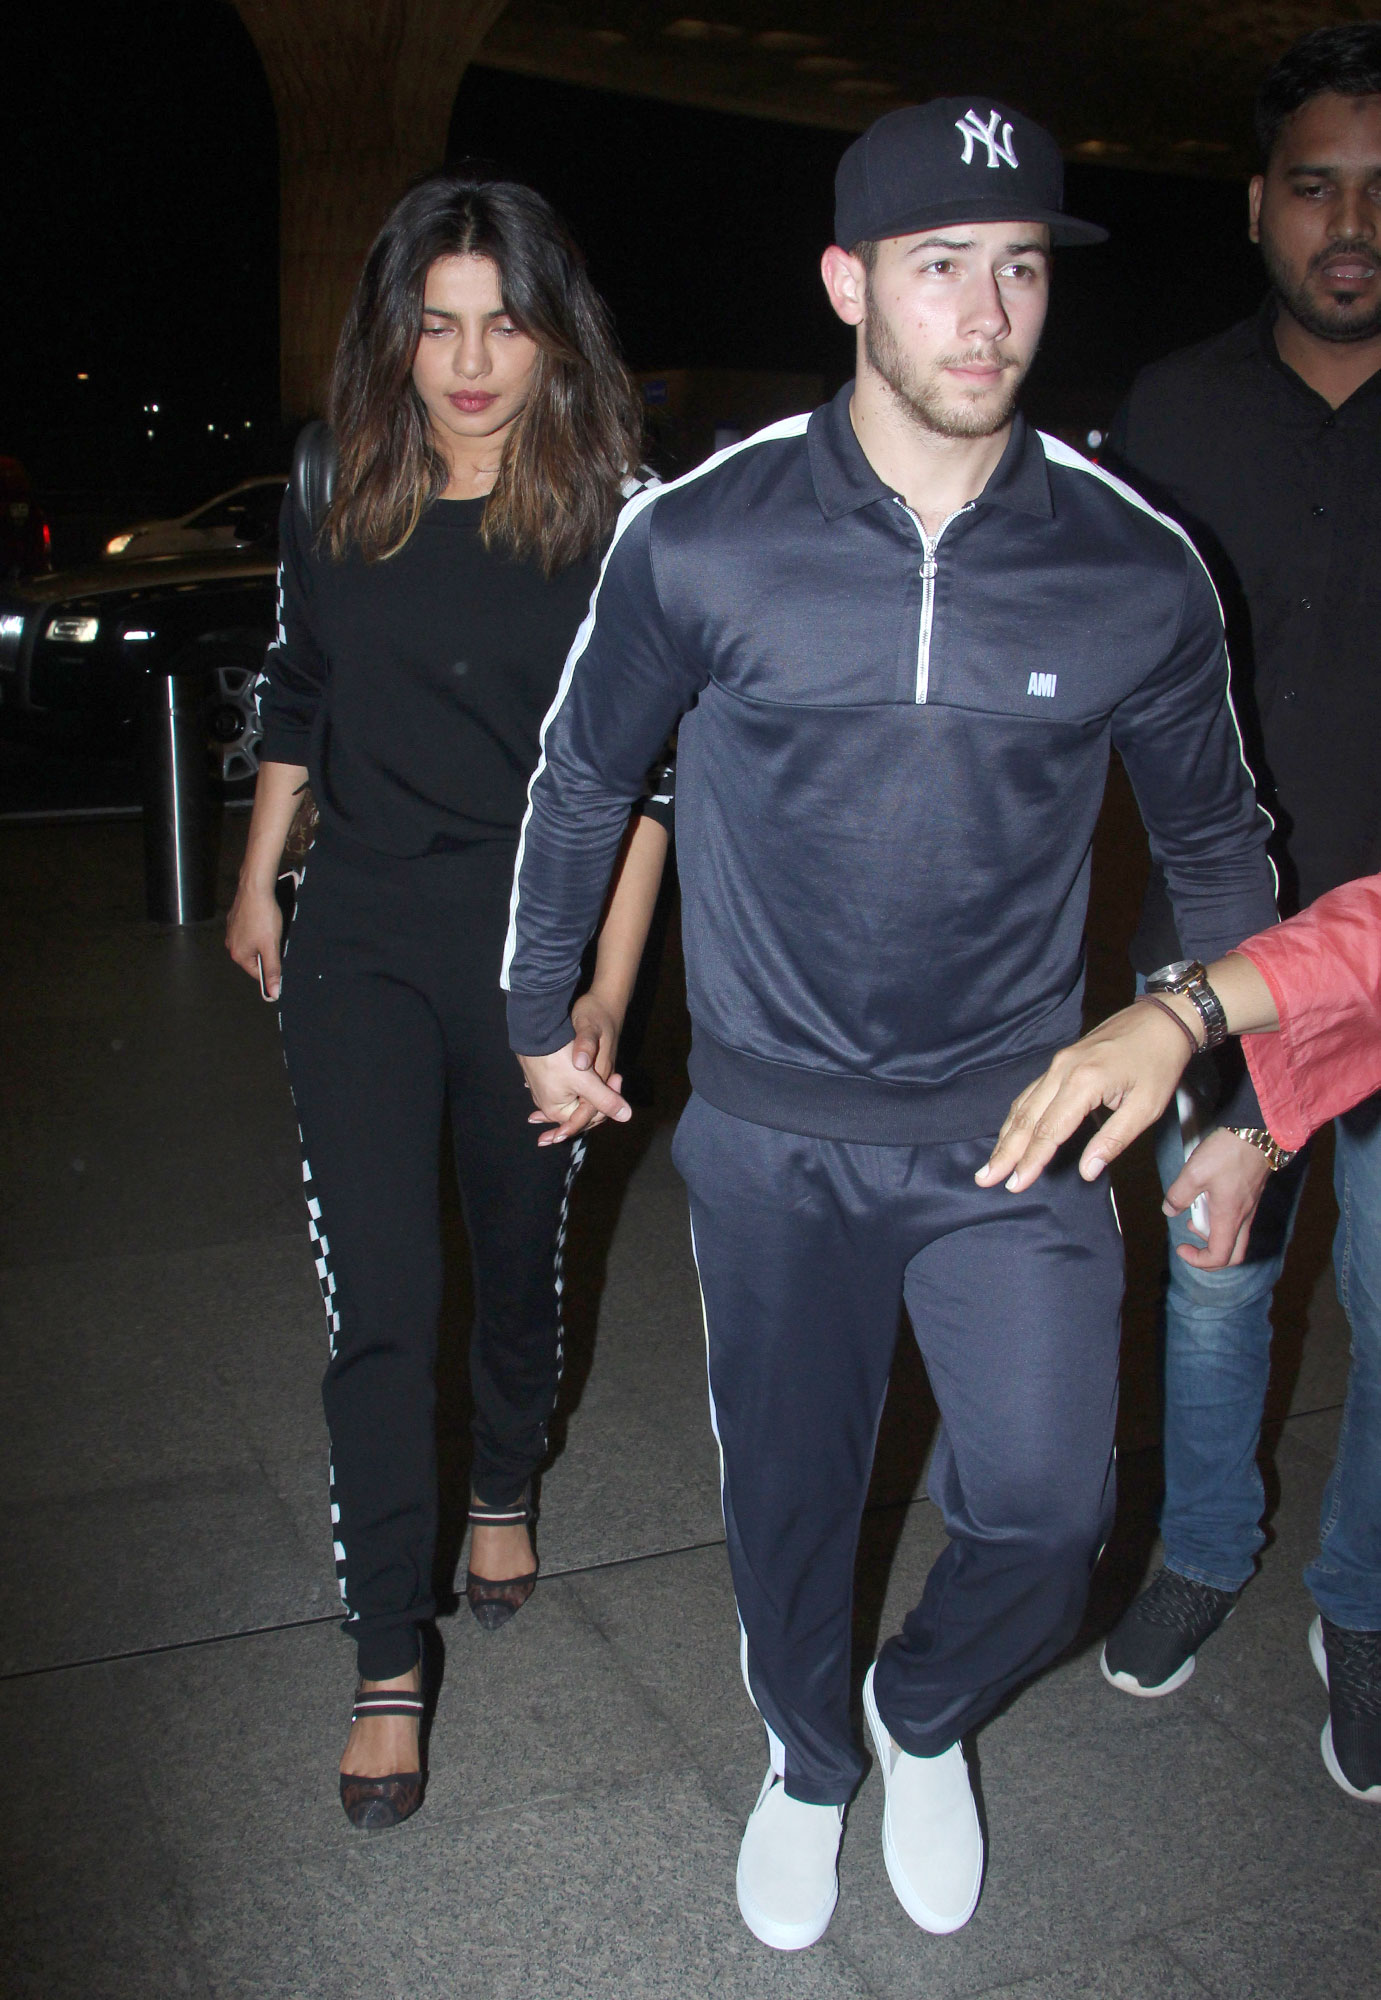 EXCLUSIVE: Priyanka Chopra and Nick Jonas leave Mumbai airport